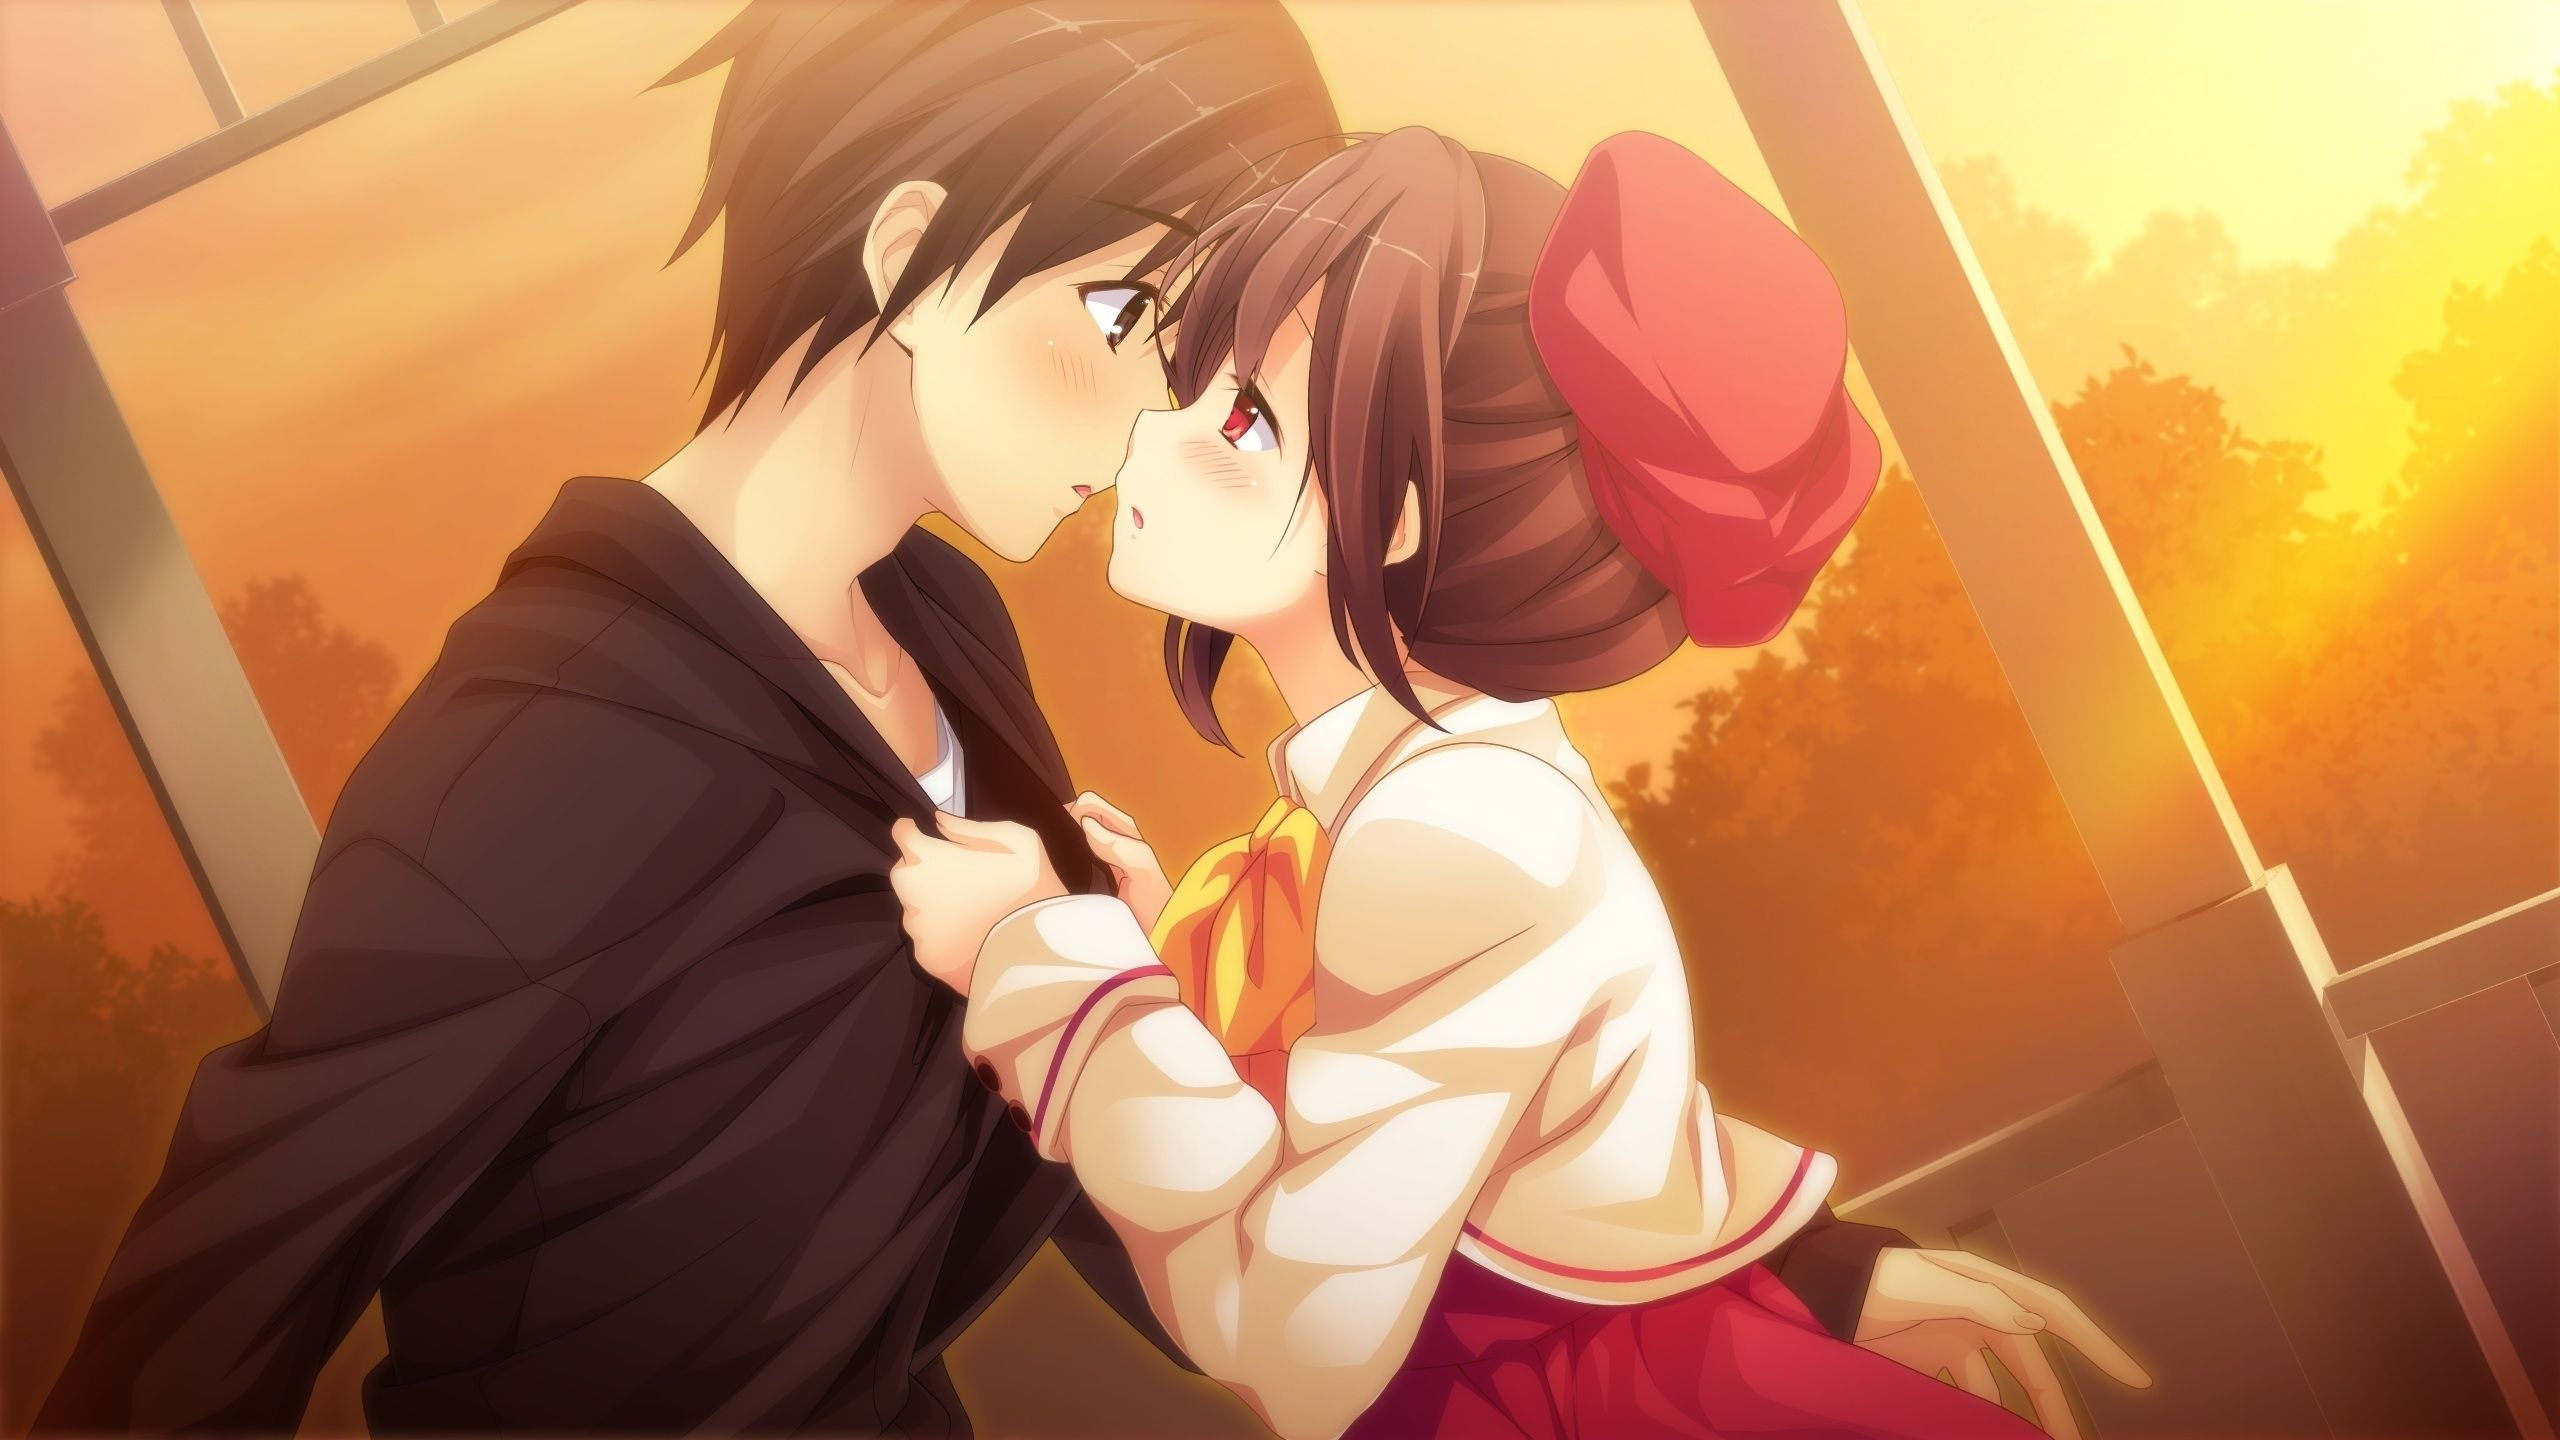 2560x1440 Wallpaper Anime Couple, Romance, Sunset - WallpaperMaiden